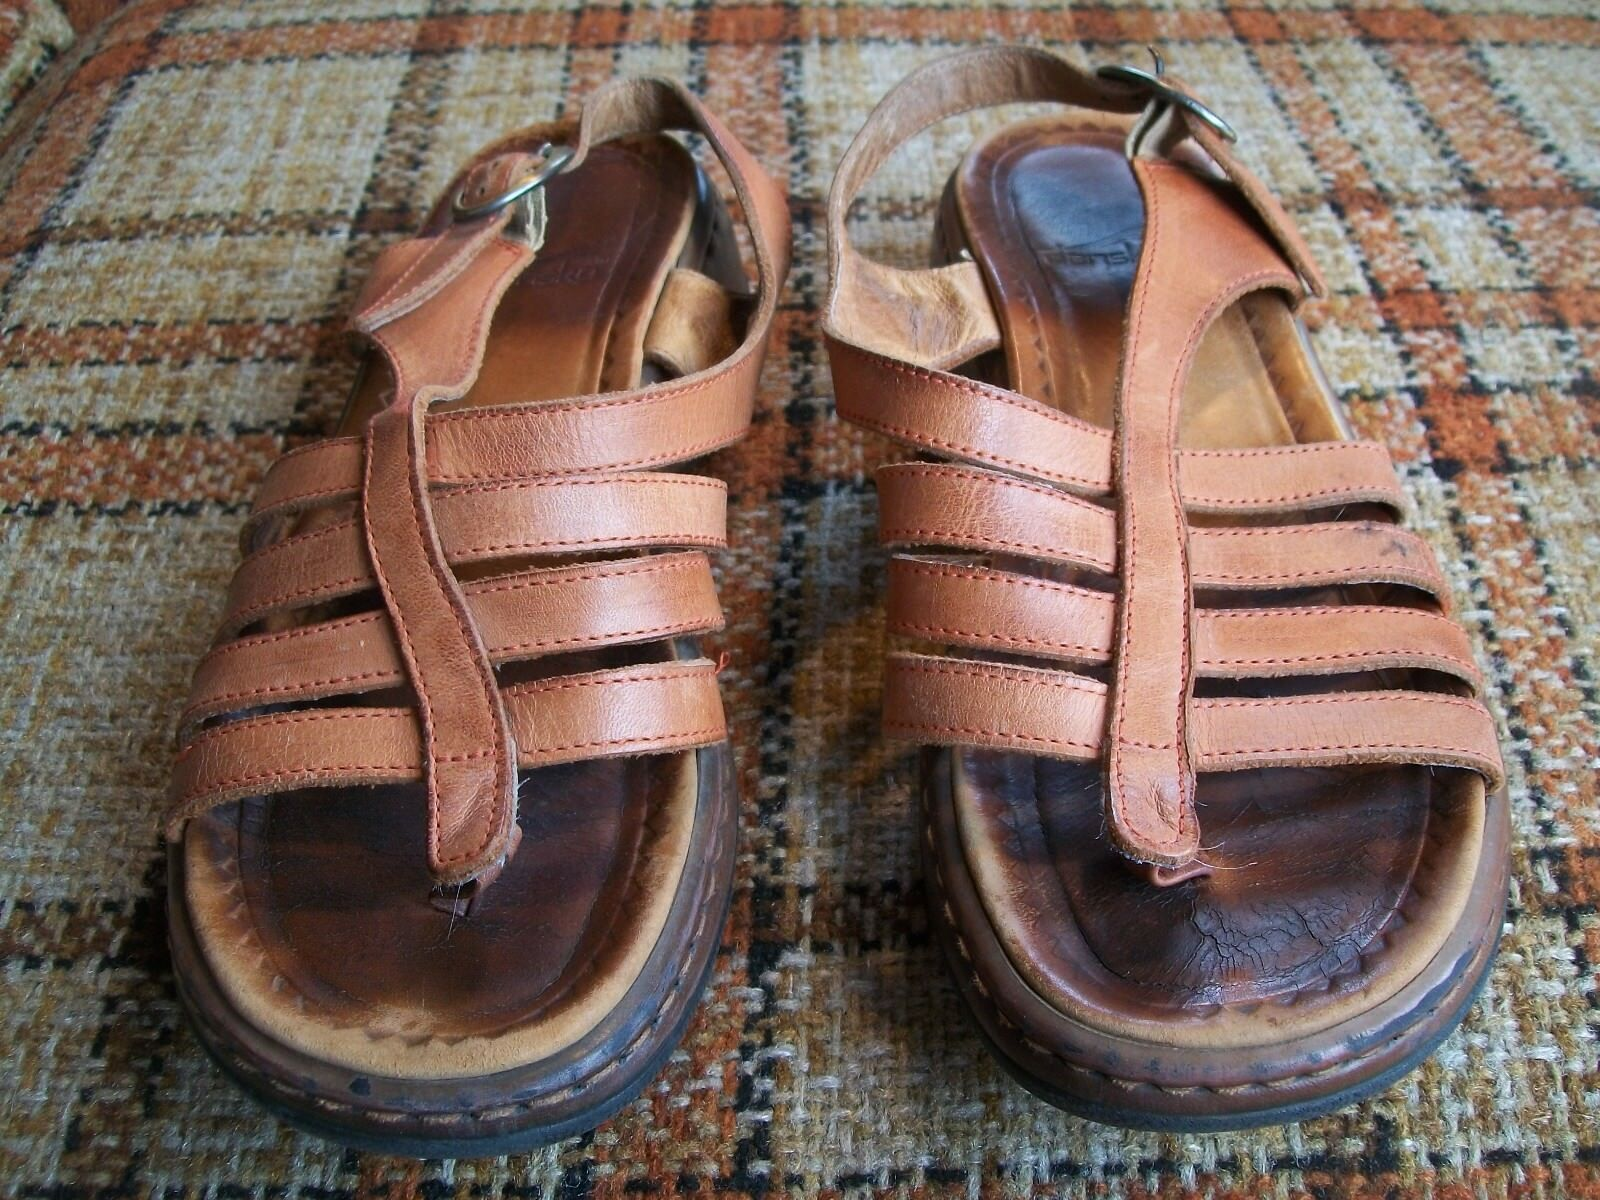 Dansko Womens Size 6.5-7 Strappy () Brown Strappy 6.5-7 Sandals 9c47f7